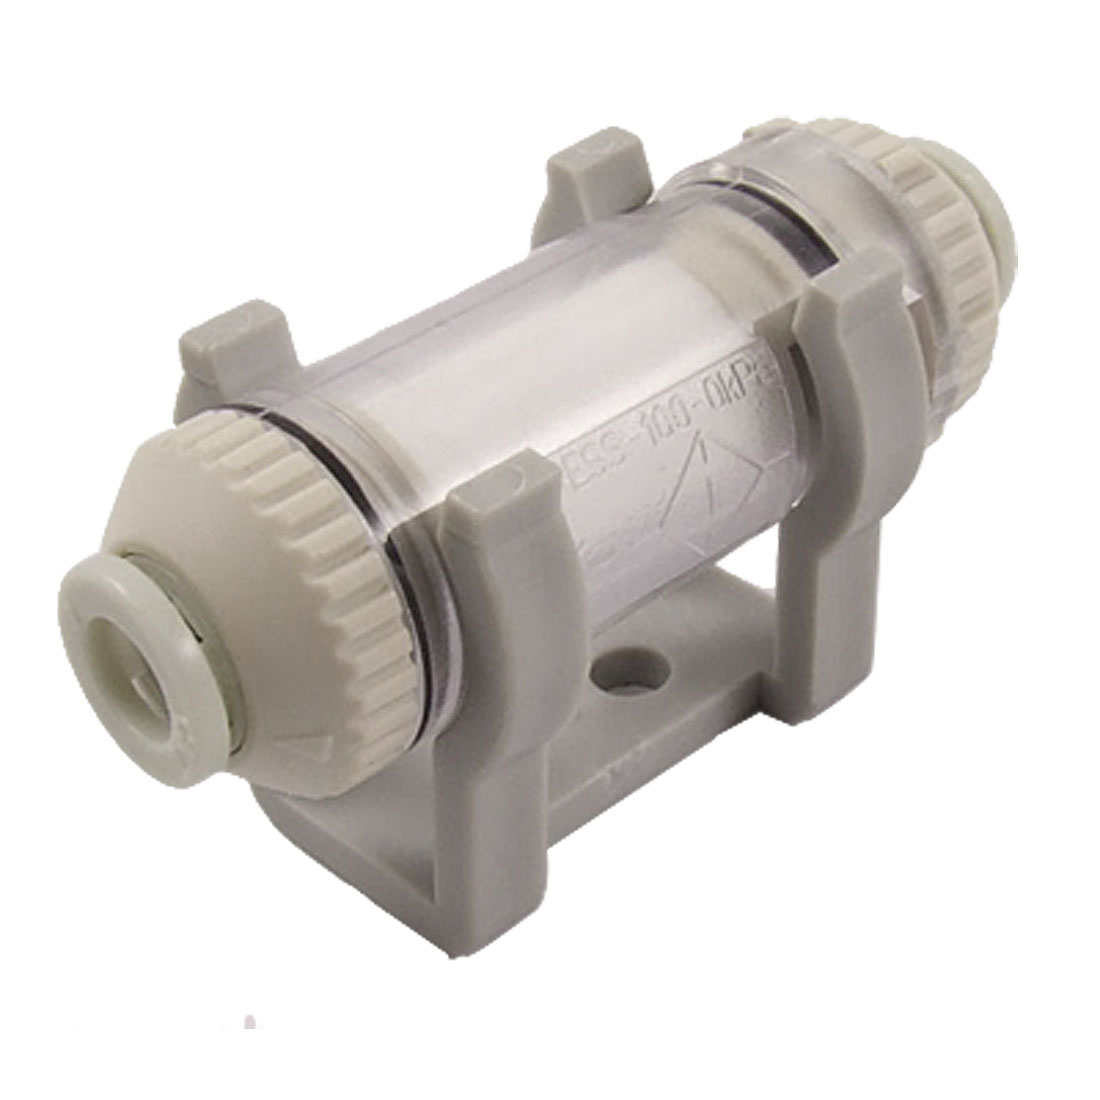 ZFC100-06B 6mm OD Tube Push in Quick Connector In Line Vacuum Air Suction Filter